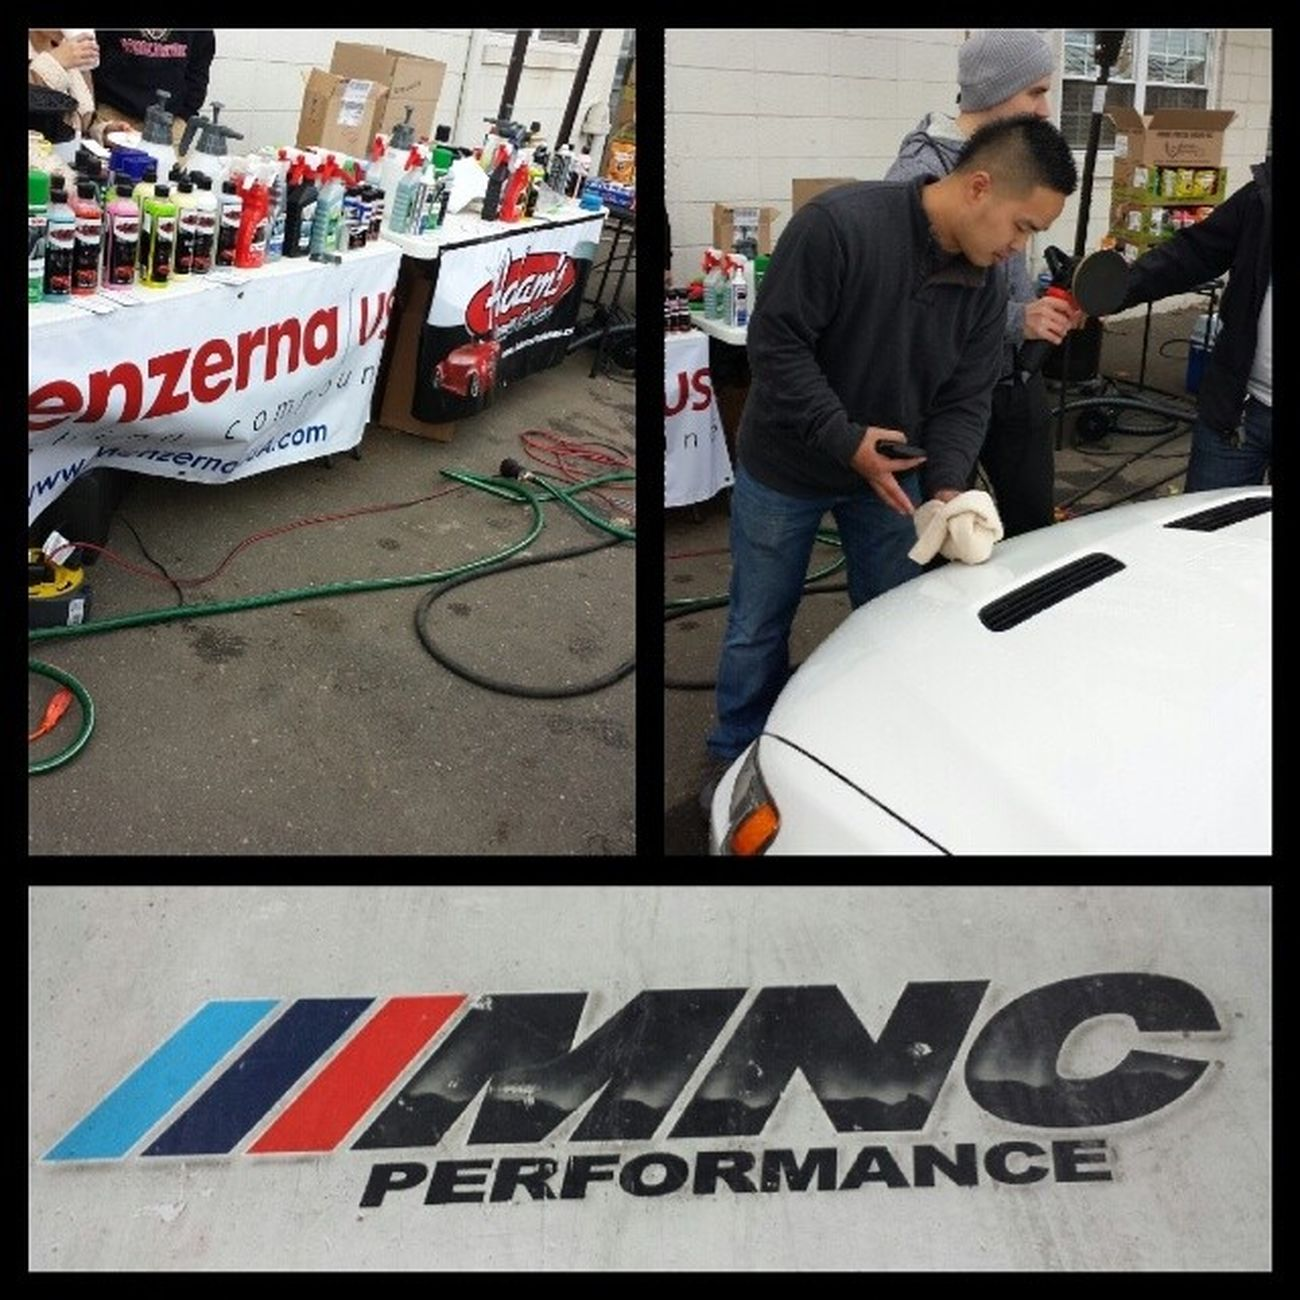 Come by @mncperformance now for some 101 on detailing you car by the guys from @detailersgarage Nycalive Mncperformance Li Oceanside bmw carlife fortheloveofeverythingcars carlove detailersgarage